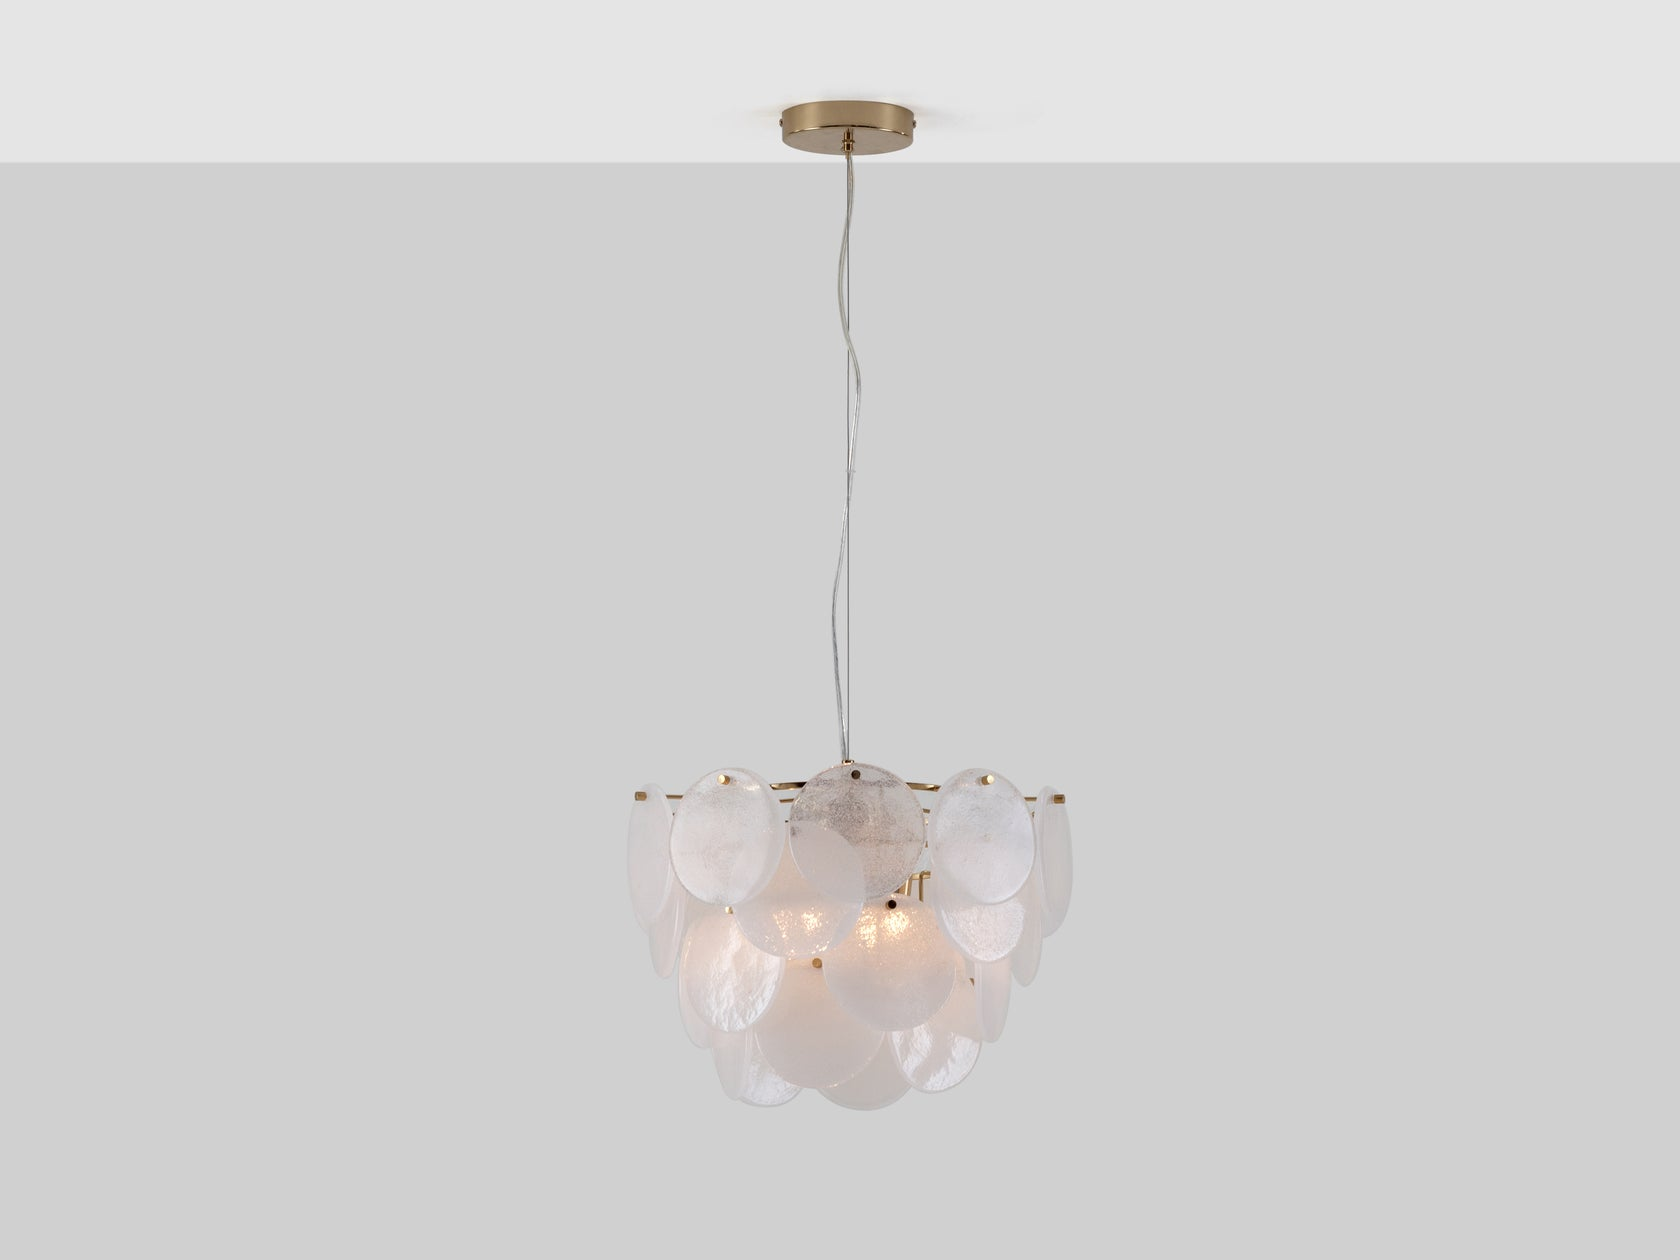 Glass disc ceiling light brass | on | houseof.com